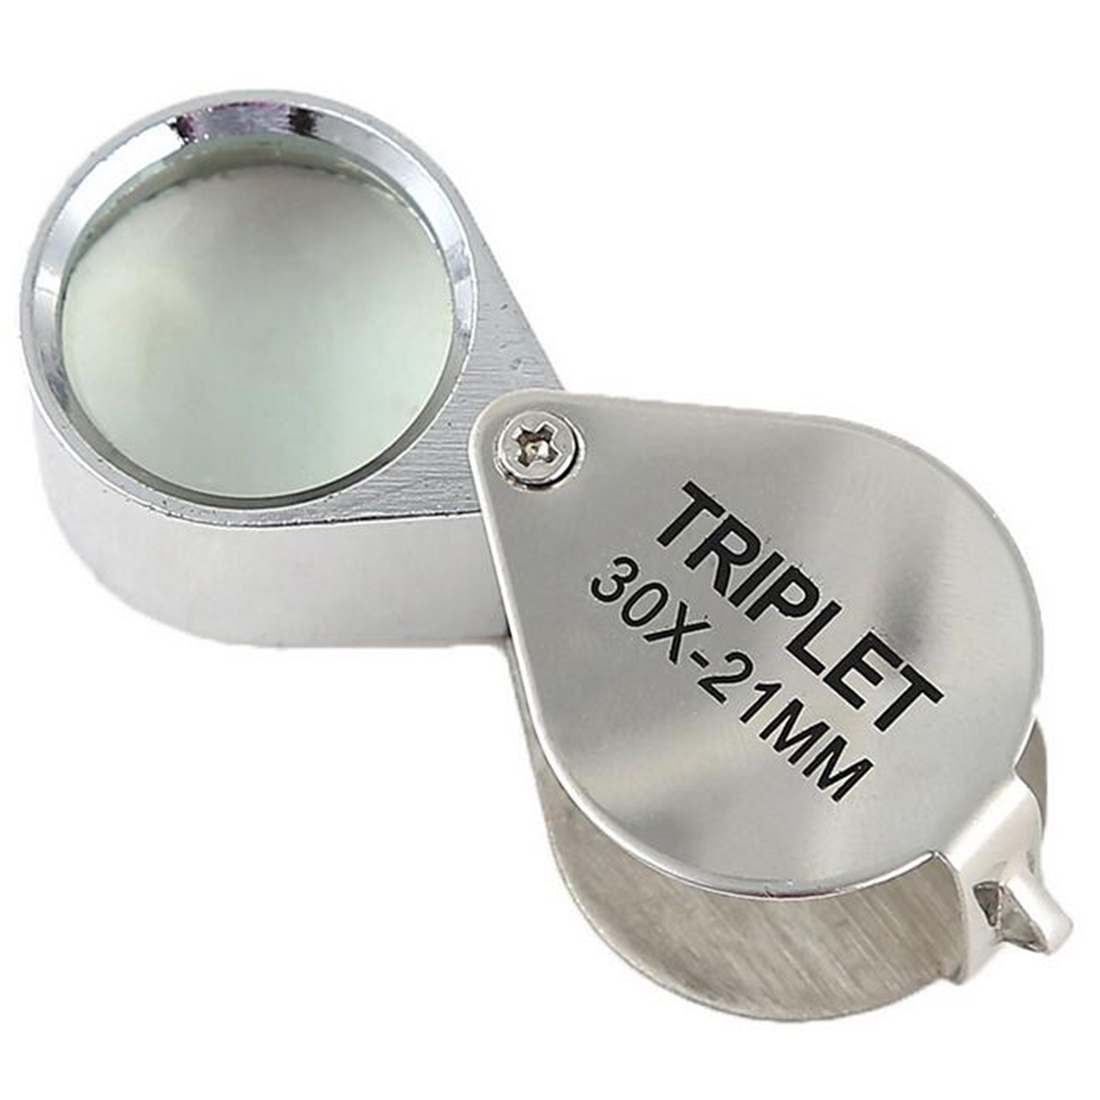 Portable 30X Power 21mm Jewelers Magnifier Gold Eye Loupe Jewelry Store Magnifying Glass